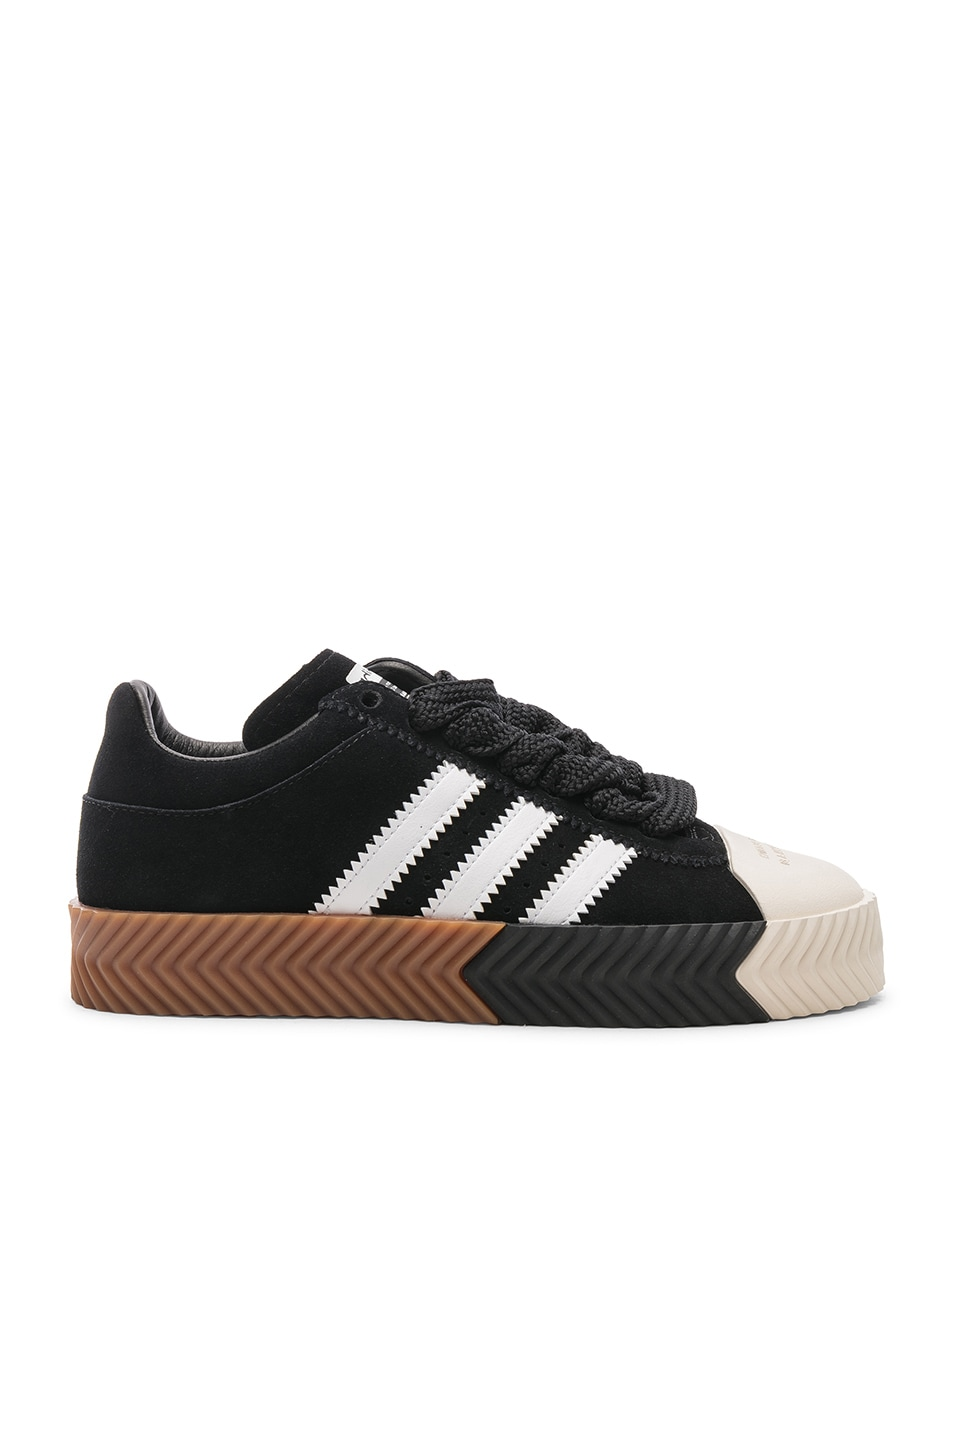 official photos 12703 52bfb Image 1 of adidas by Alexander Wang Skate Super Sneaker in Core Black   White